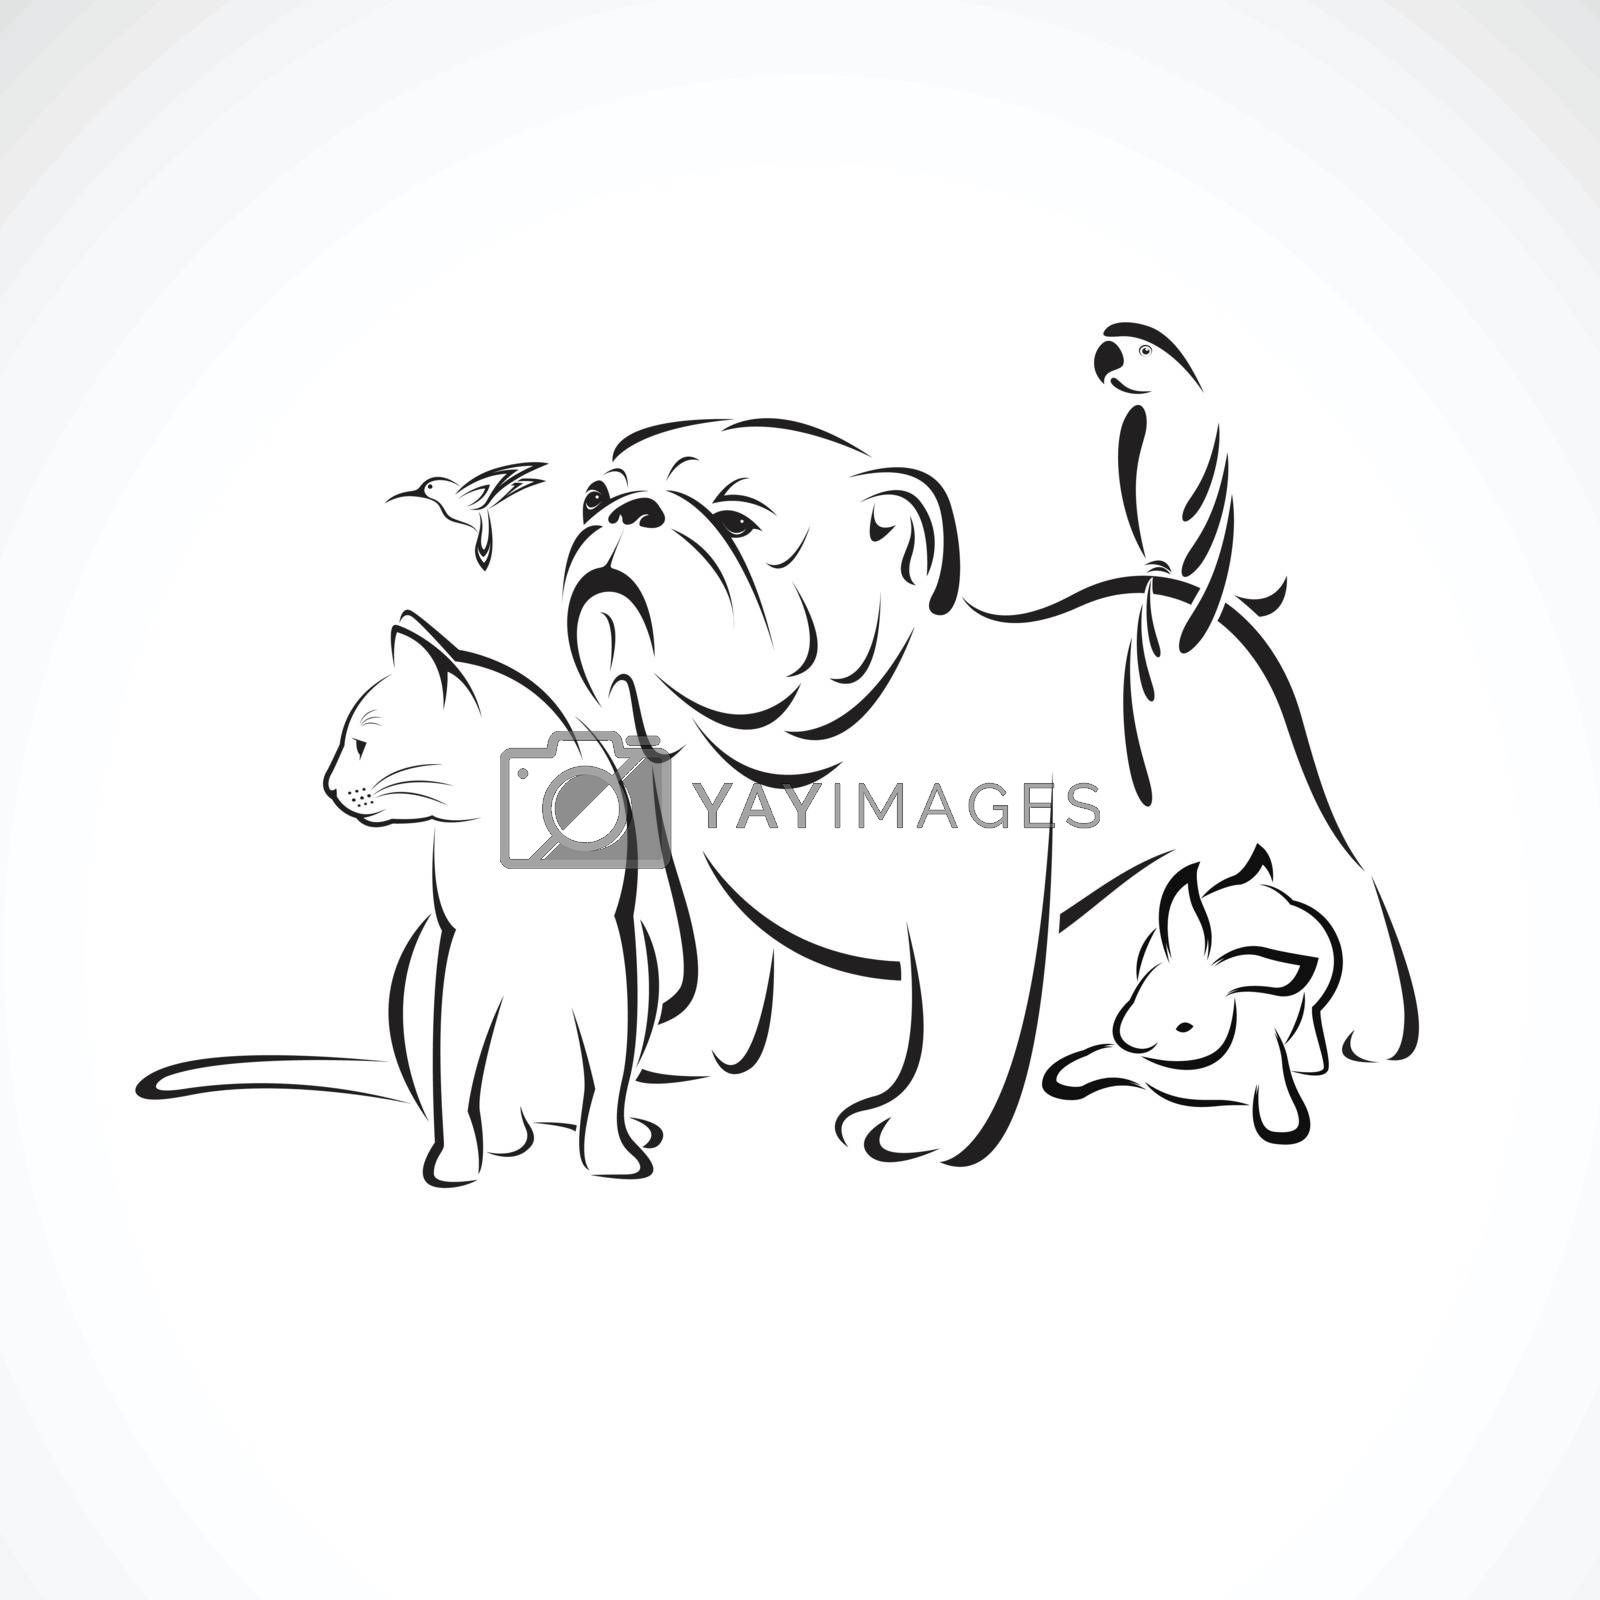 Vector group of pets - Dog, cat, bird, macaw, rabbit isolated on white background., Pet logo or Icon, Vector pet for your design.